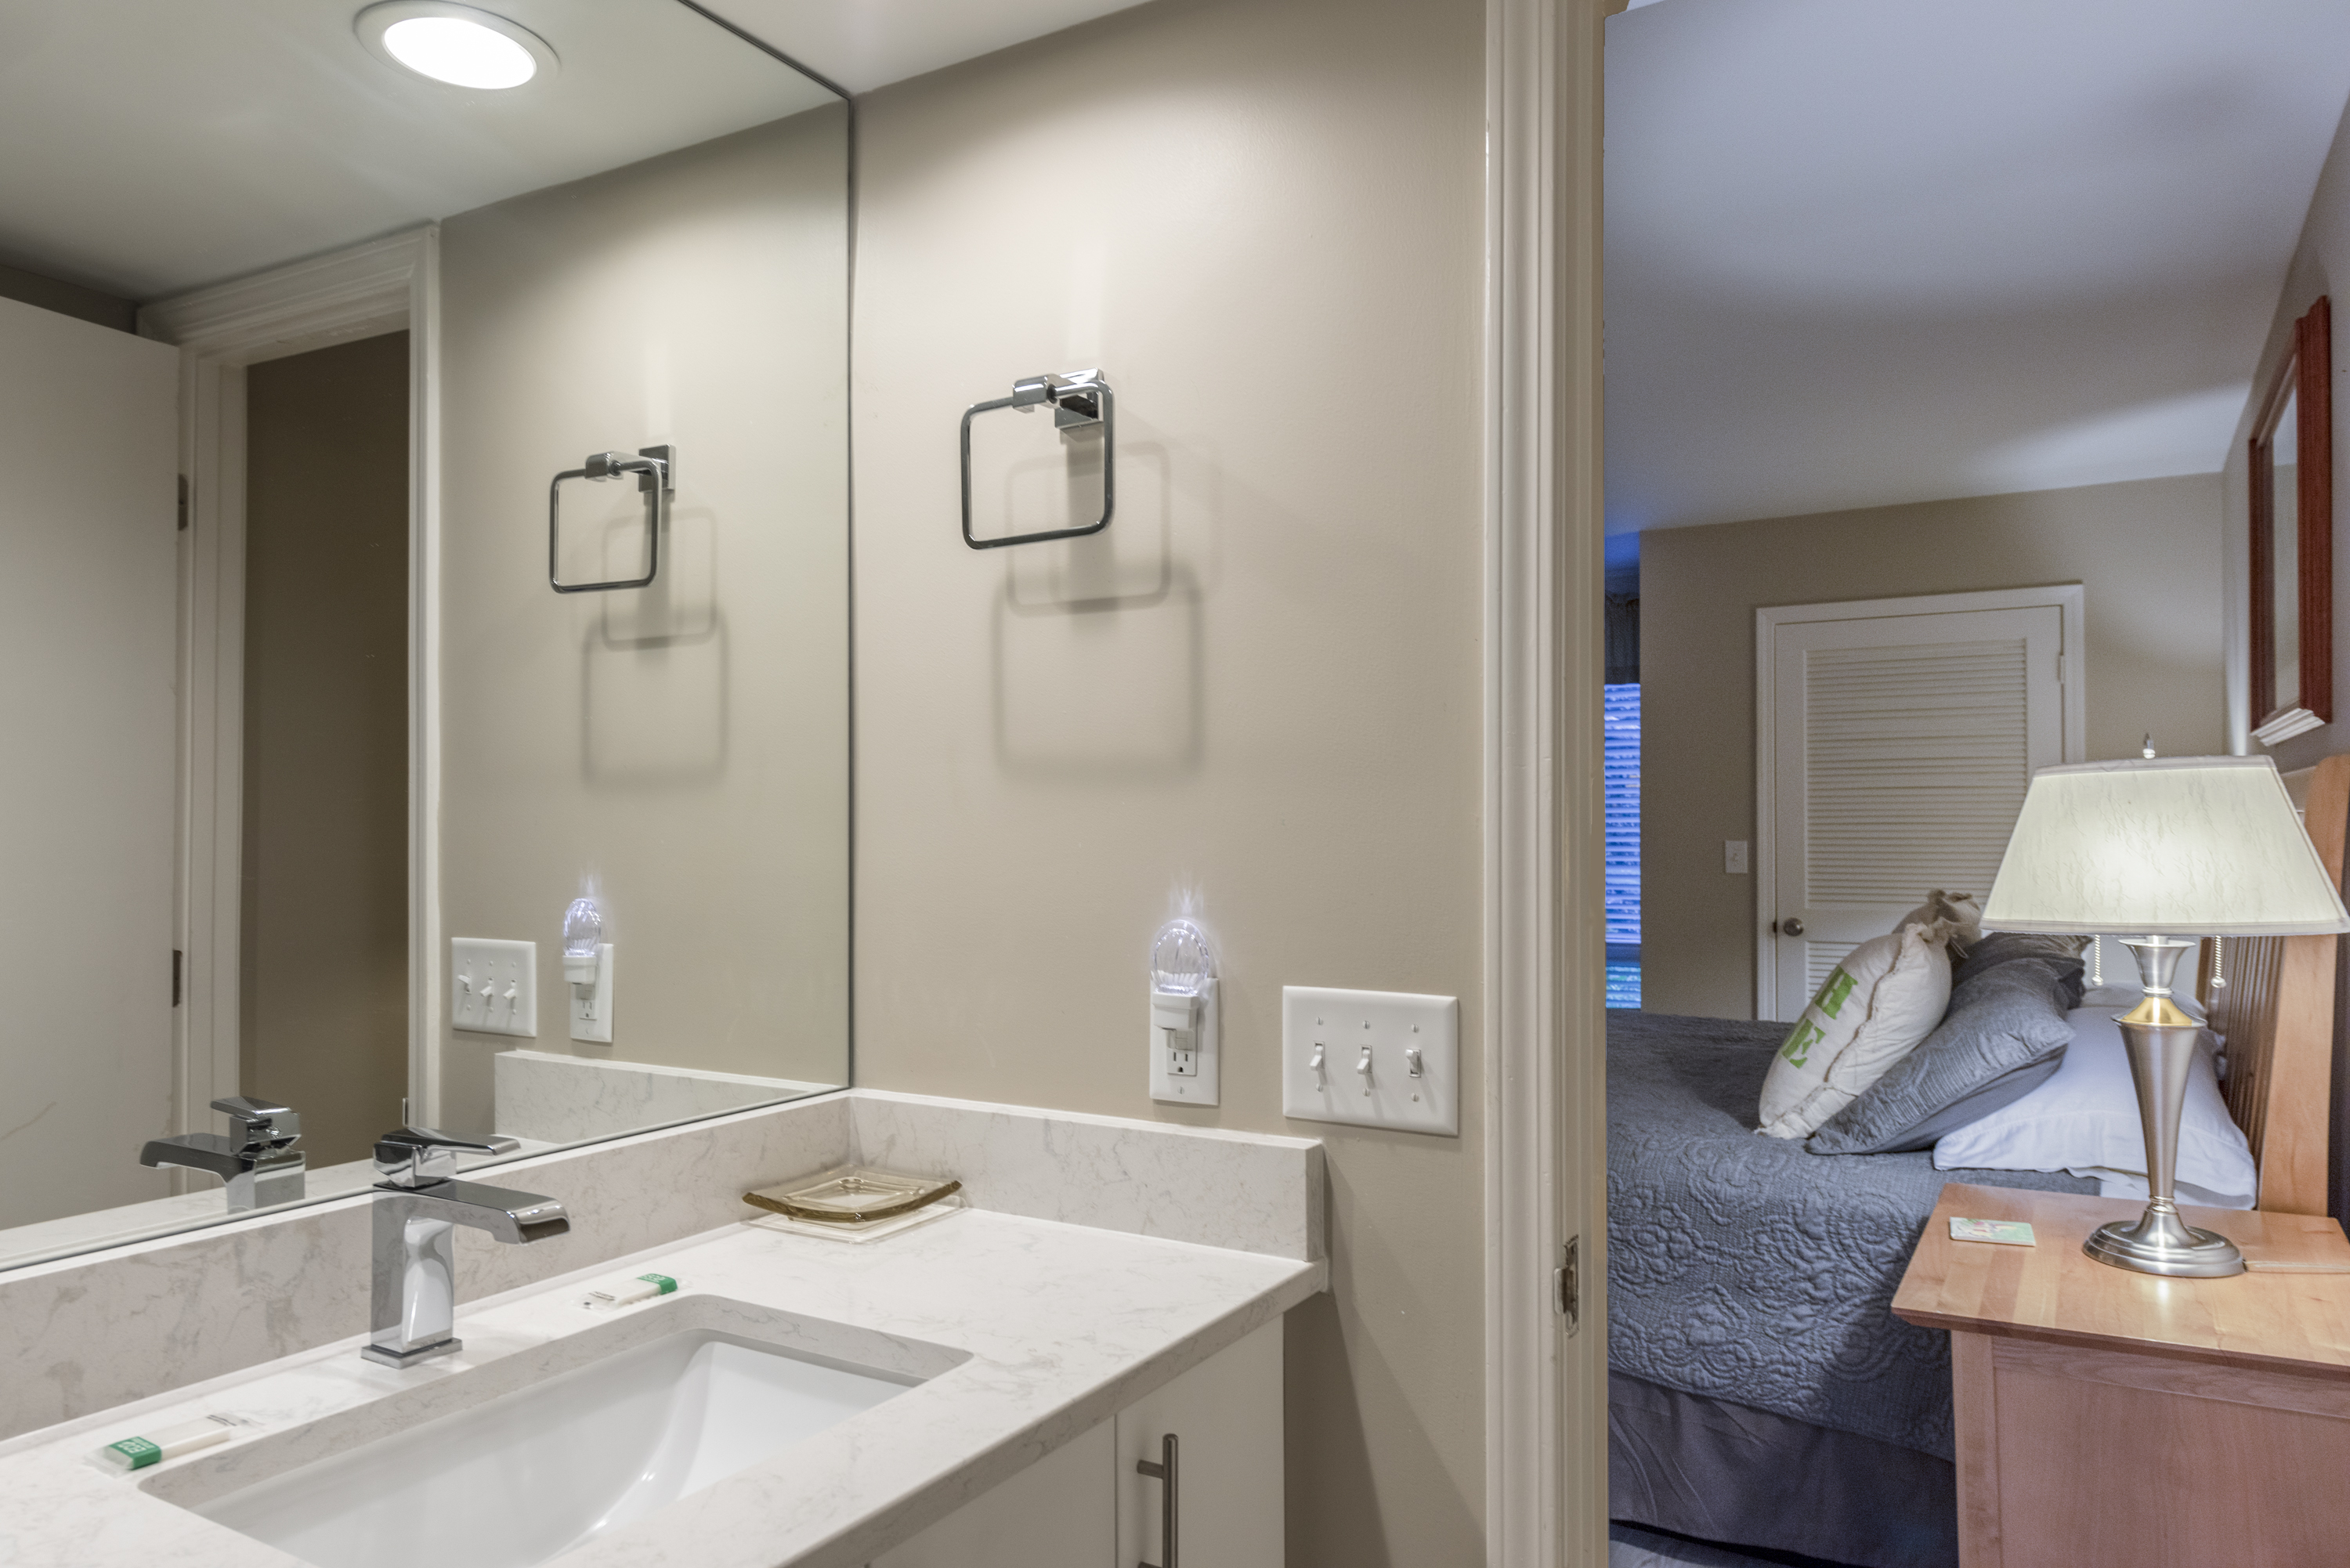 Newly remodeled bathroom off master bedroom features new vanity.